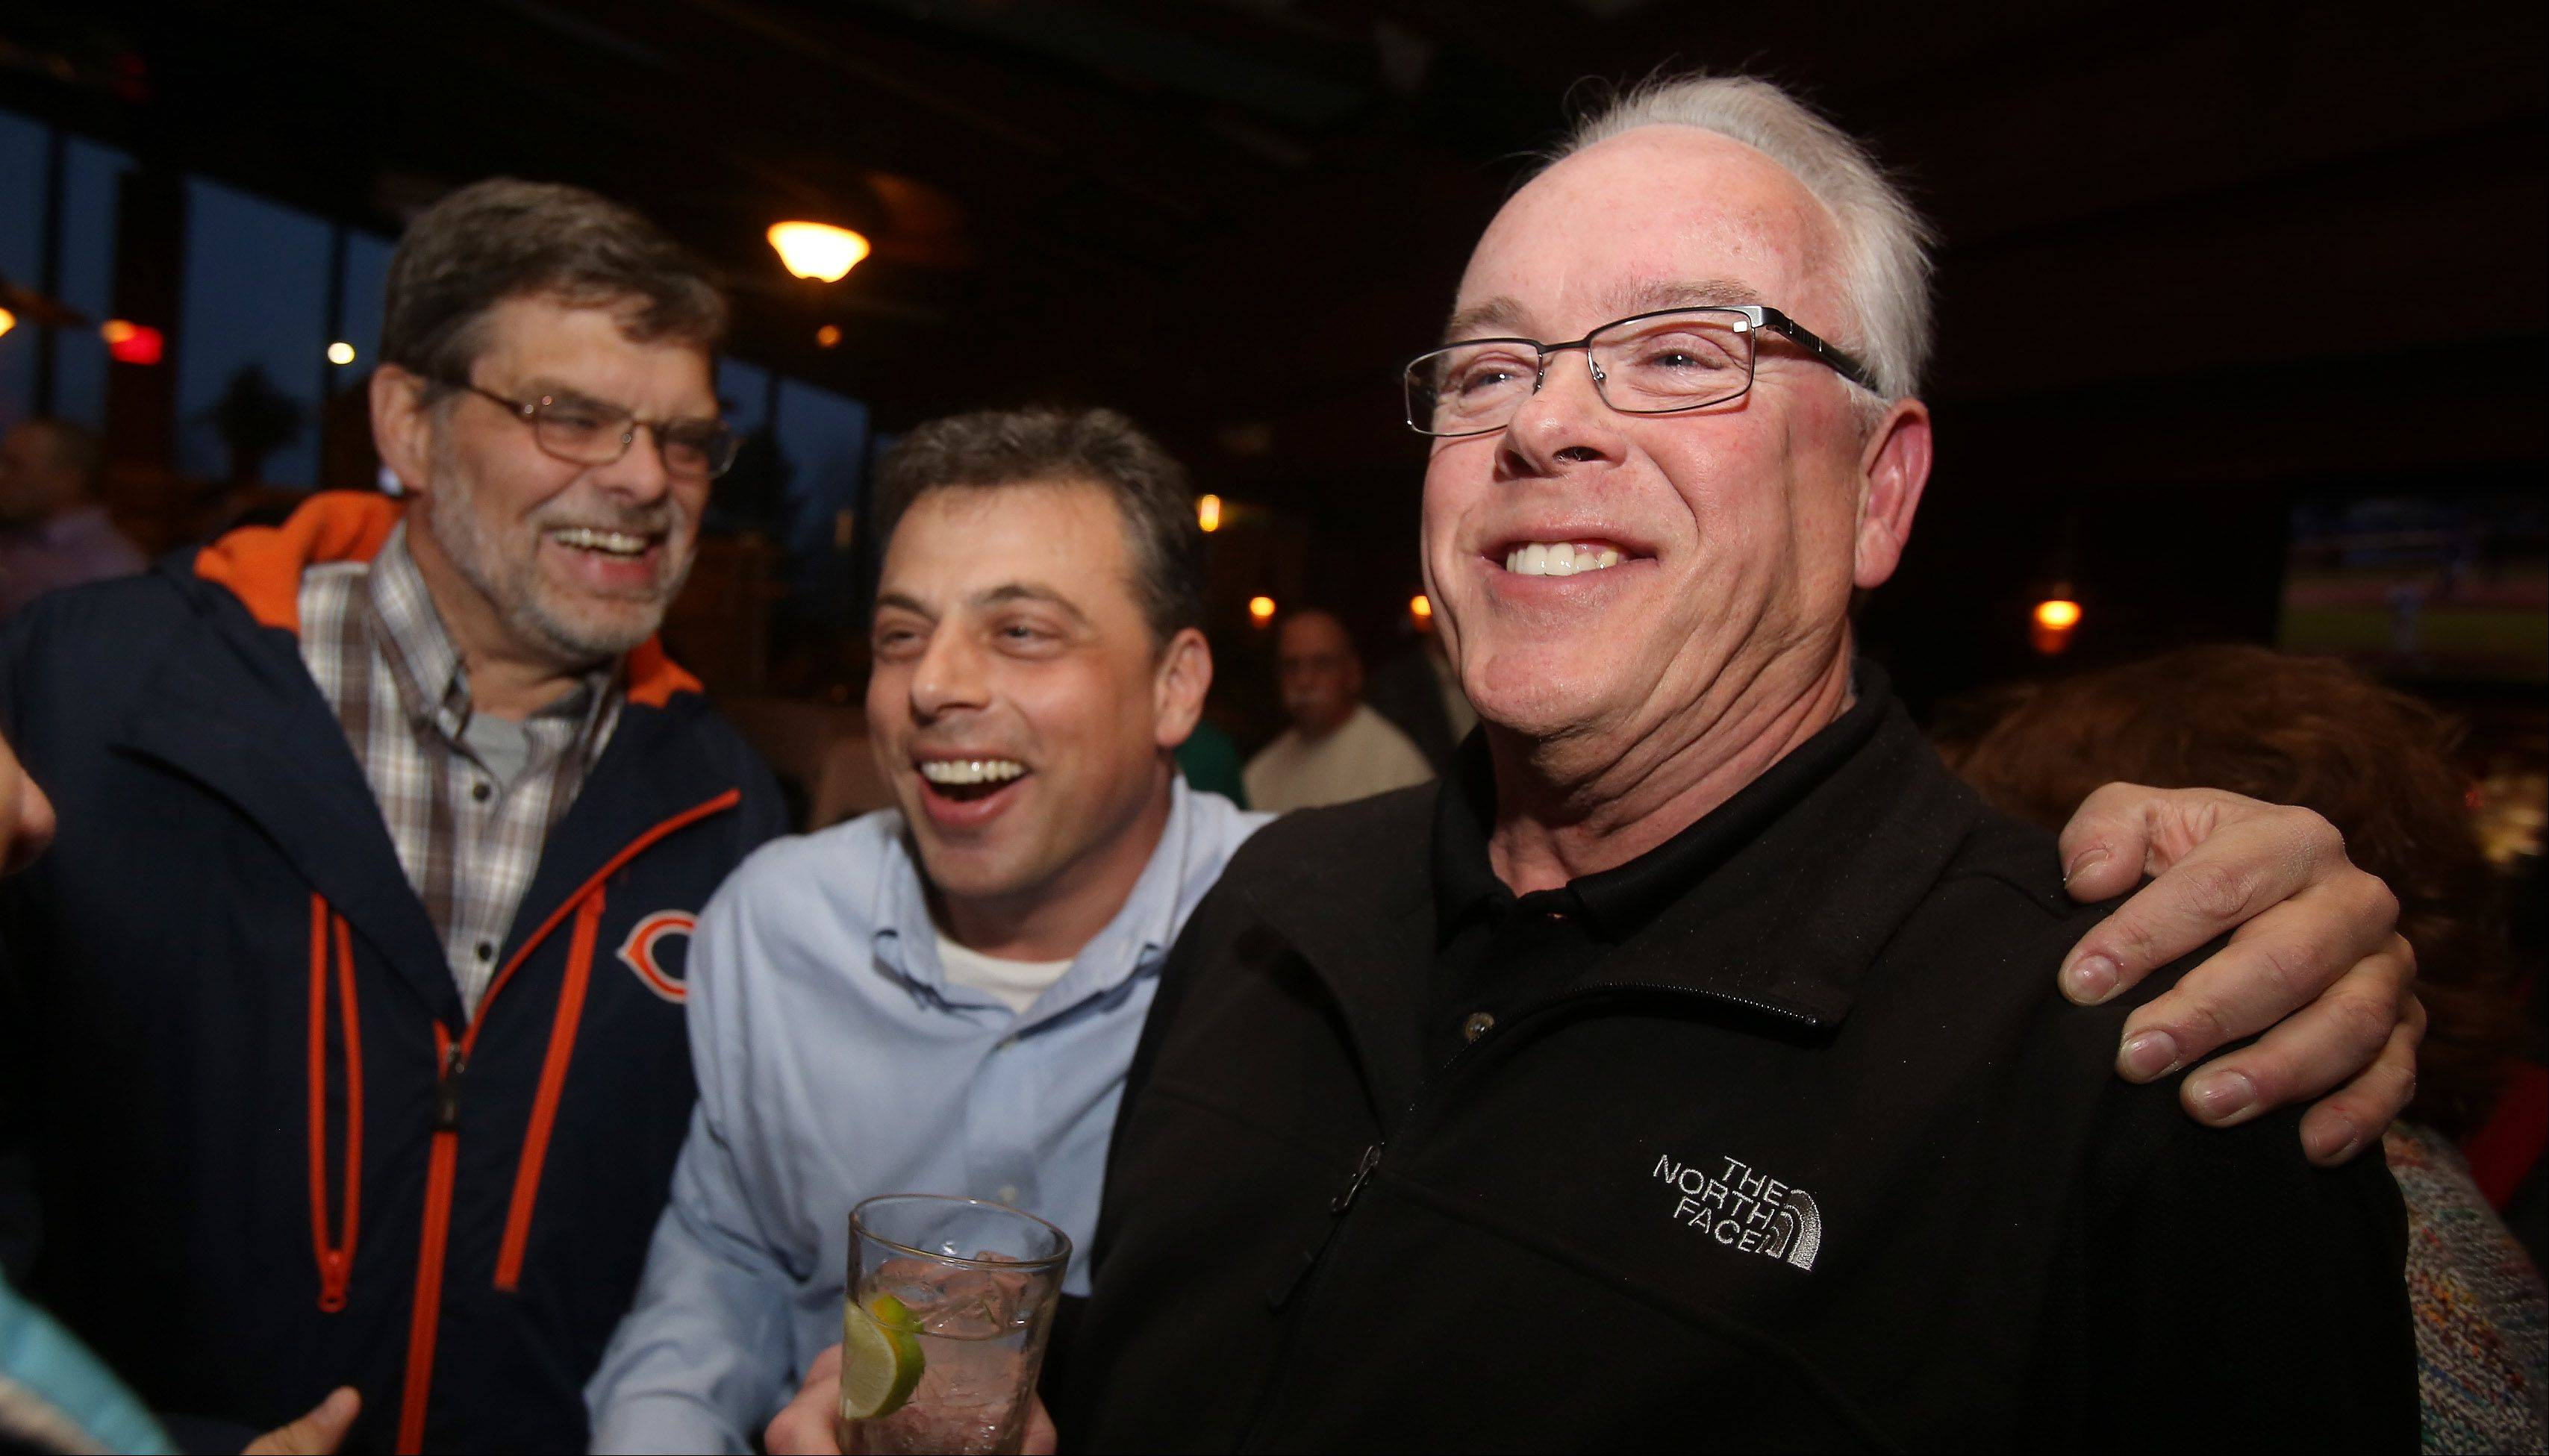 Candidate Tom Poynton, right, is congratulated by trustee candidate Jeff Halen as they watch election results for the Lake Zurich mayoral race come in during his election party Tuesday at Beelow's Steakhouse. Poynton won the race by a substantial margin.